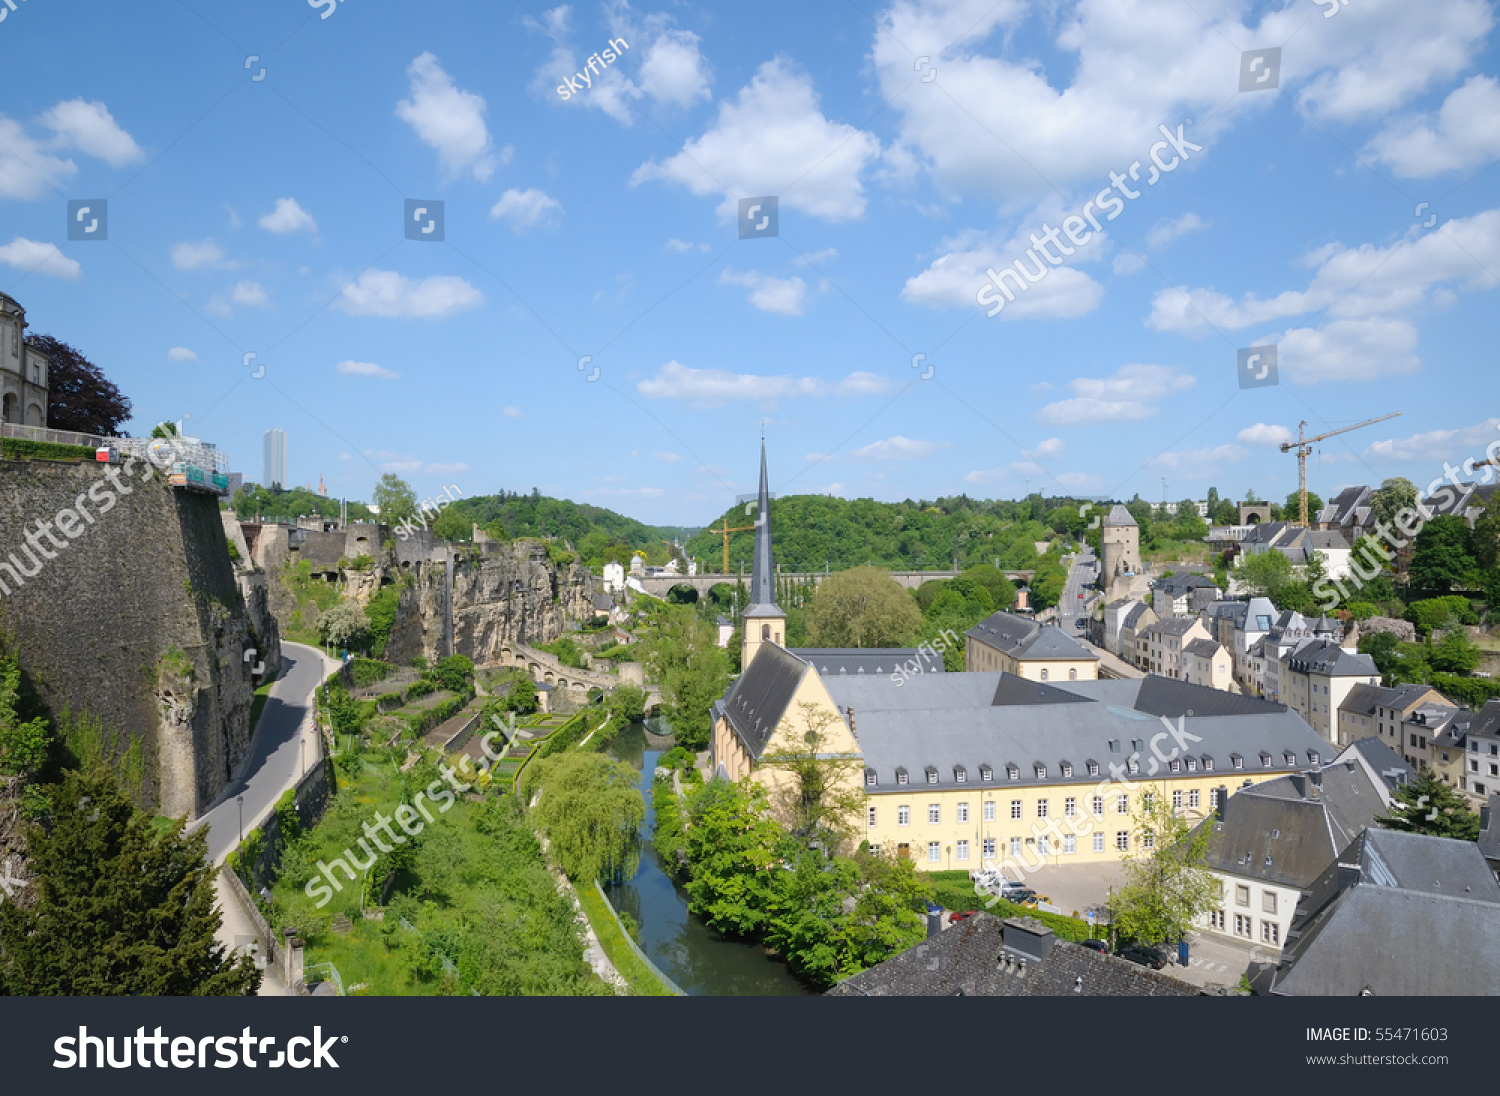 luxembourg black singles The city of luxembourg is the capital of the namesake country,  3 the black stuff (pulvermuhl),  july 2011 prices were 65€ for single occupancy, .